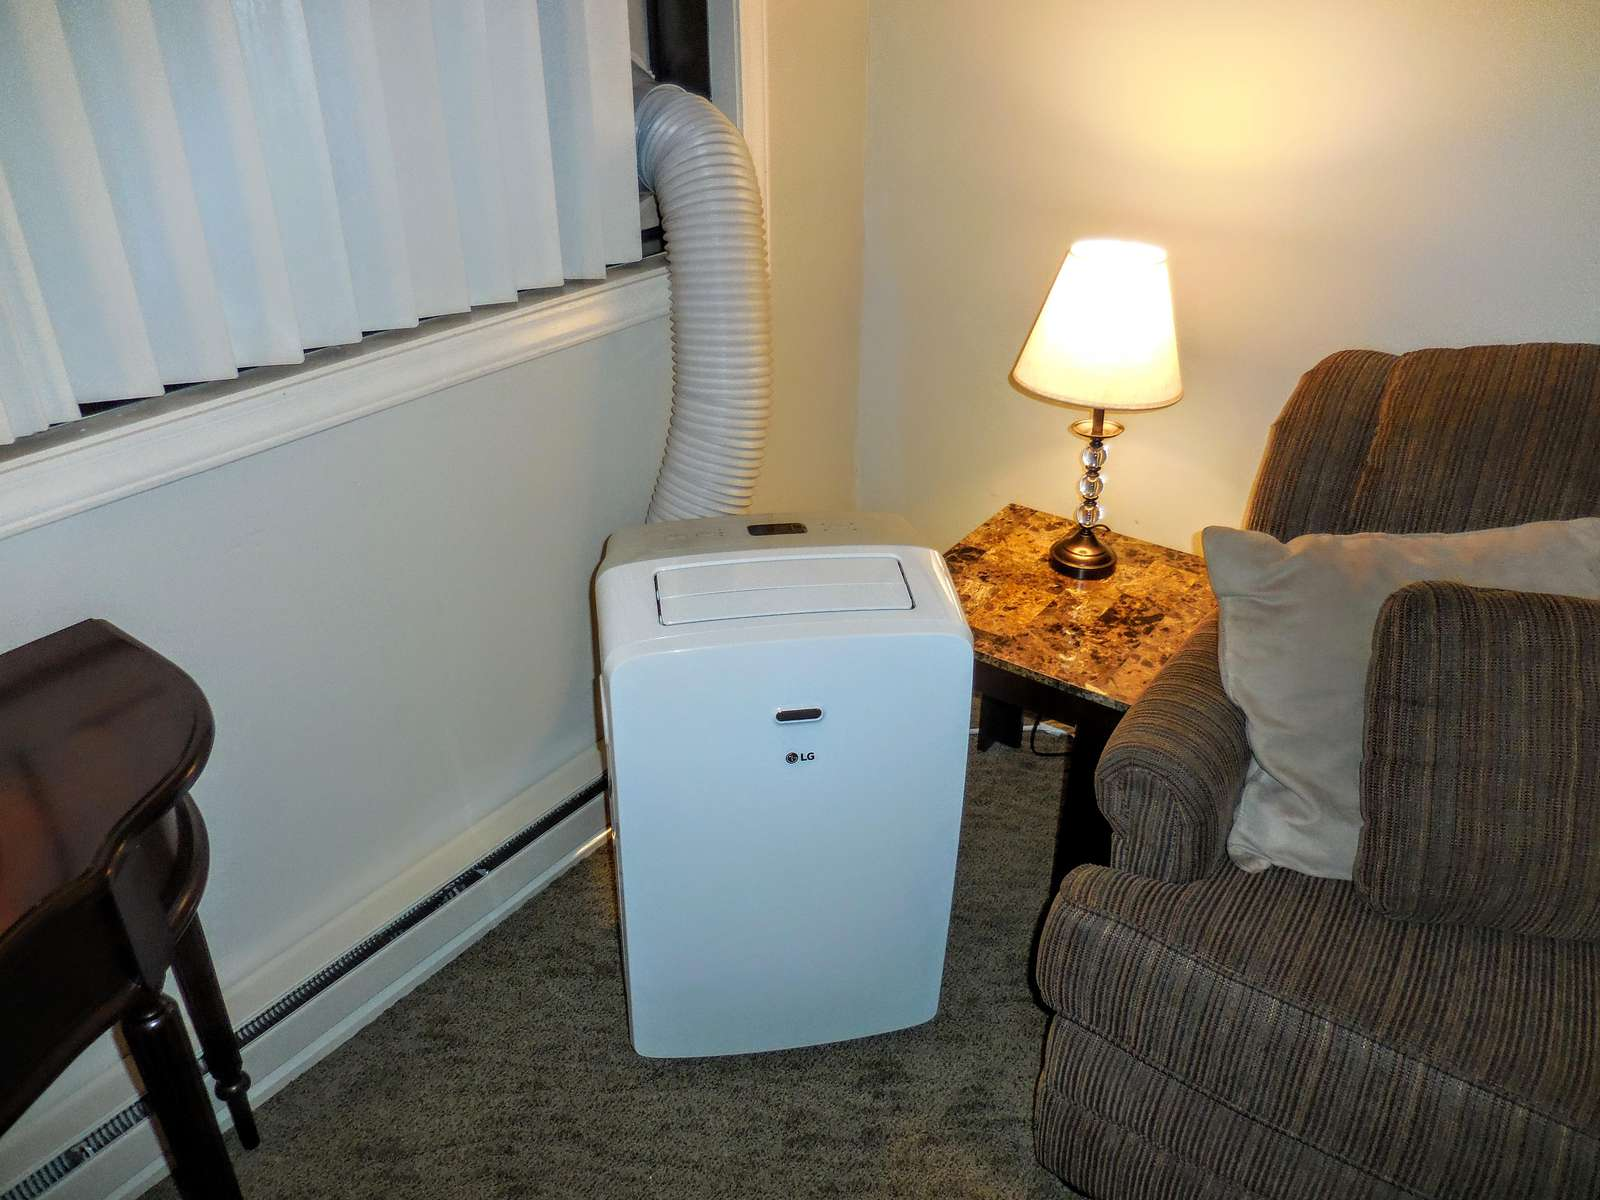 Portable A/C unit during Summer months